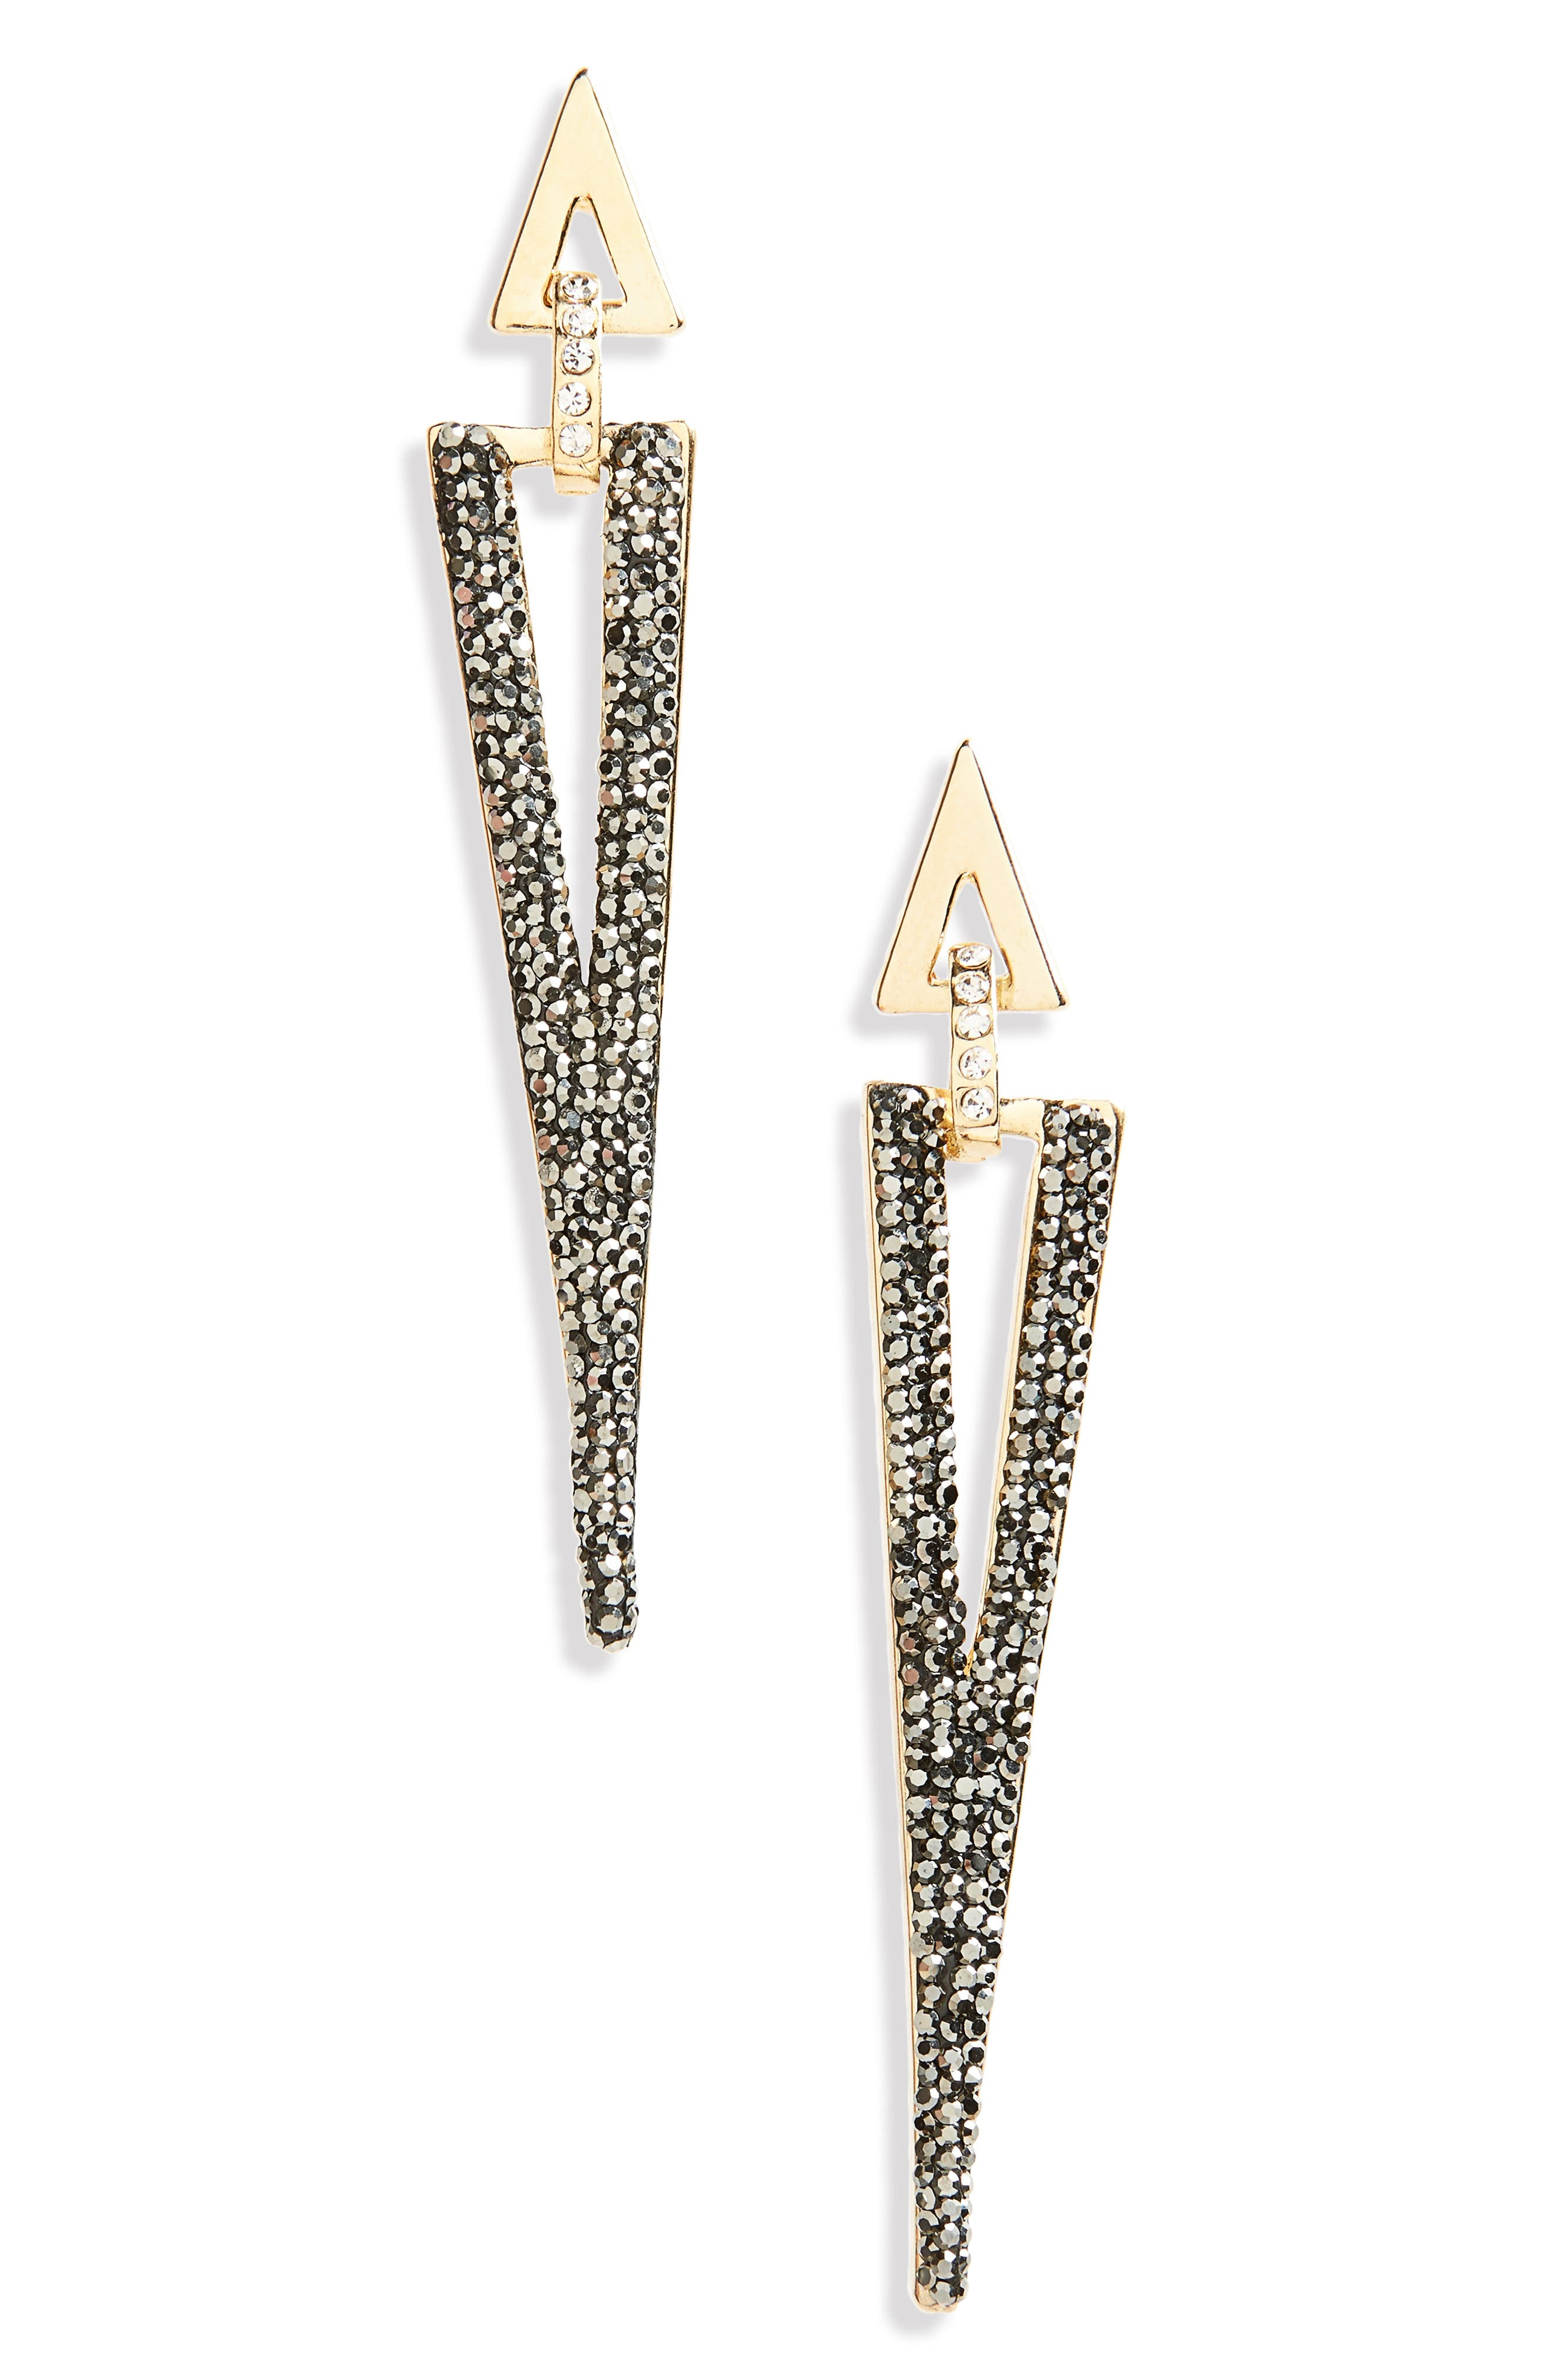 Linear Luxe Triangle Earrings,                         Main,                         color, 020